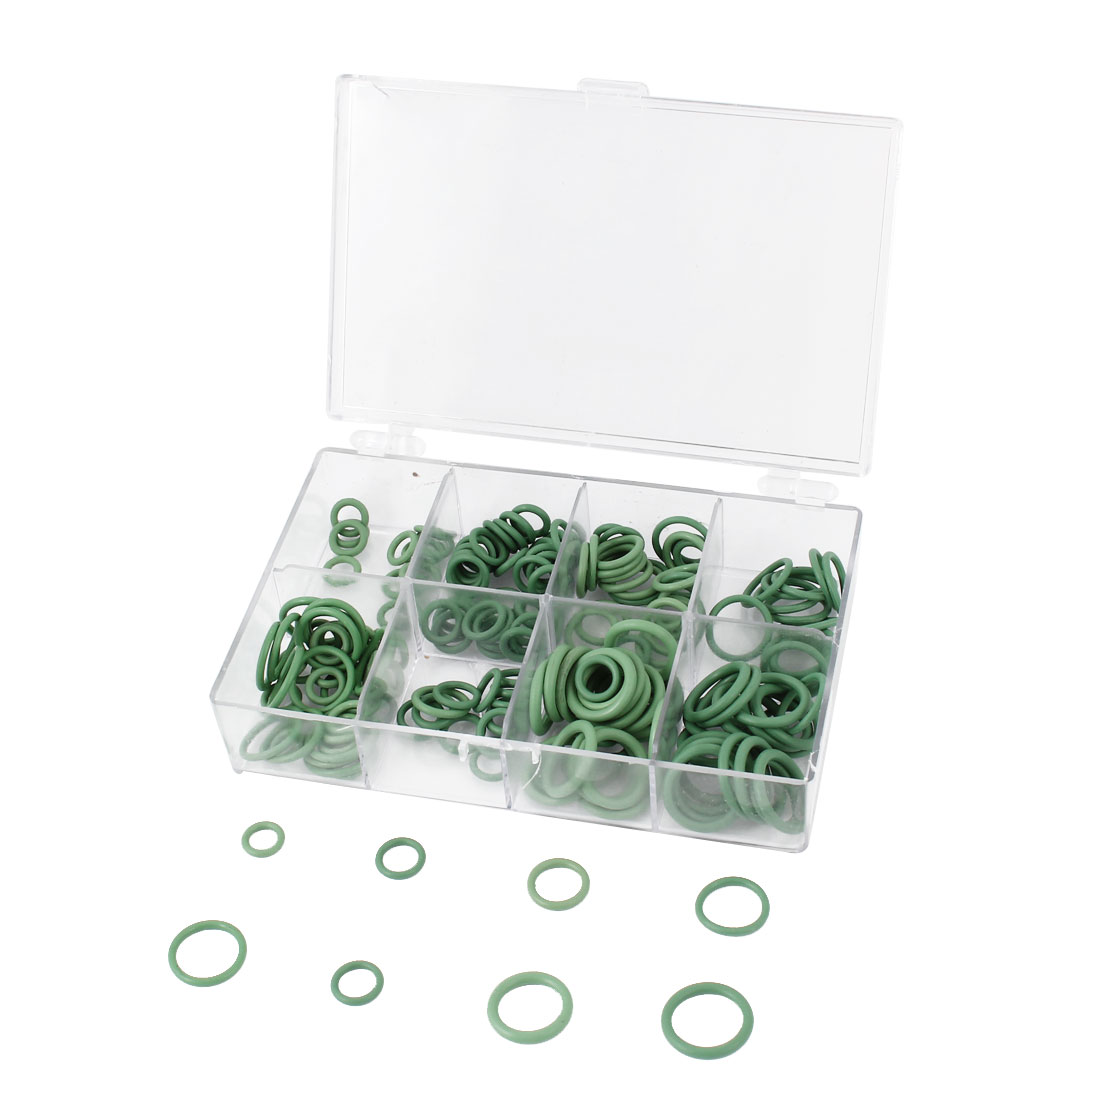 240 Pcs 8 Sizes HNBR Car Truck Air Conditioning A/C Rapid Seal O Rings Green